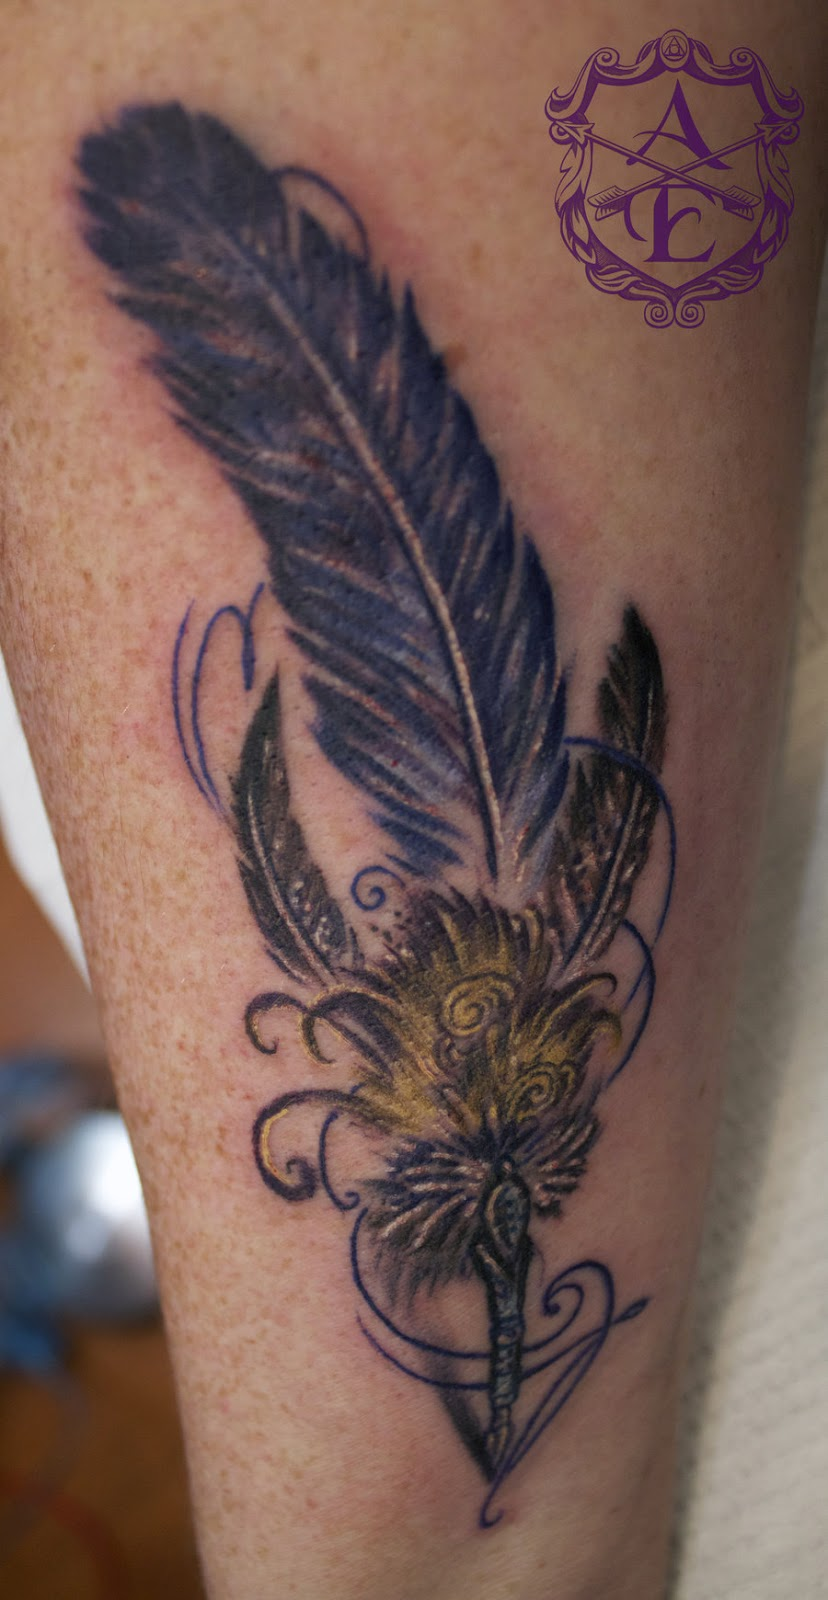 A Fledgling Writer And Bipolar Sufferer Another Tattoo Idea Ideas And Designs